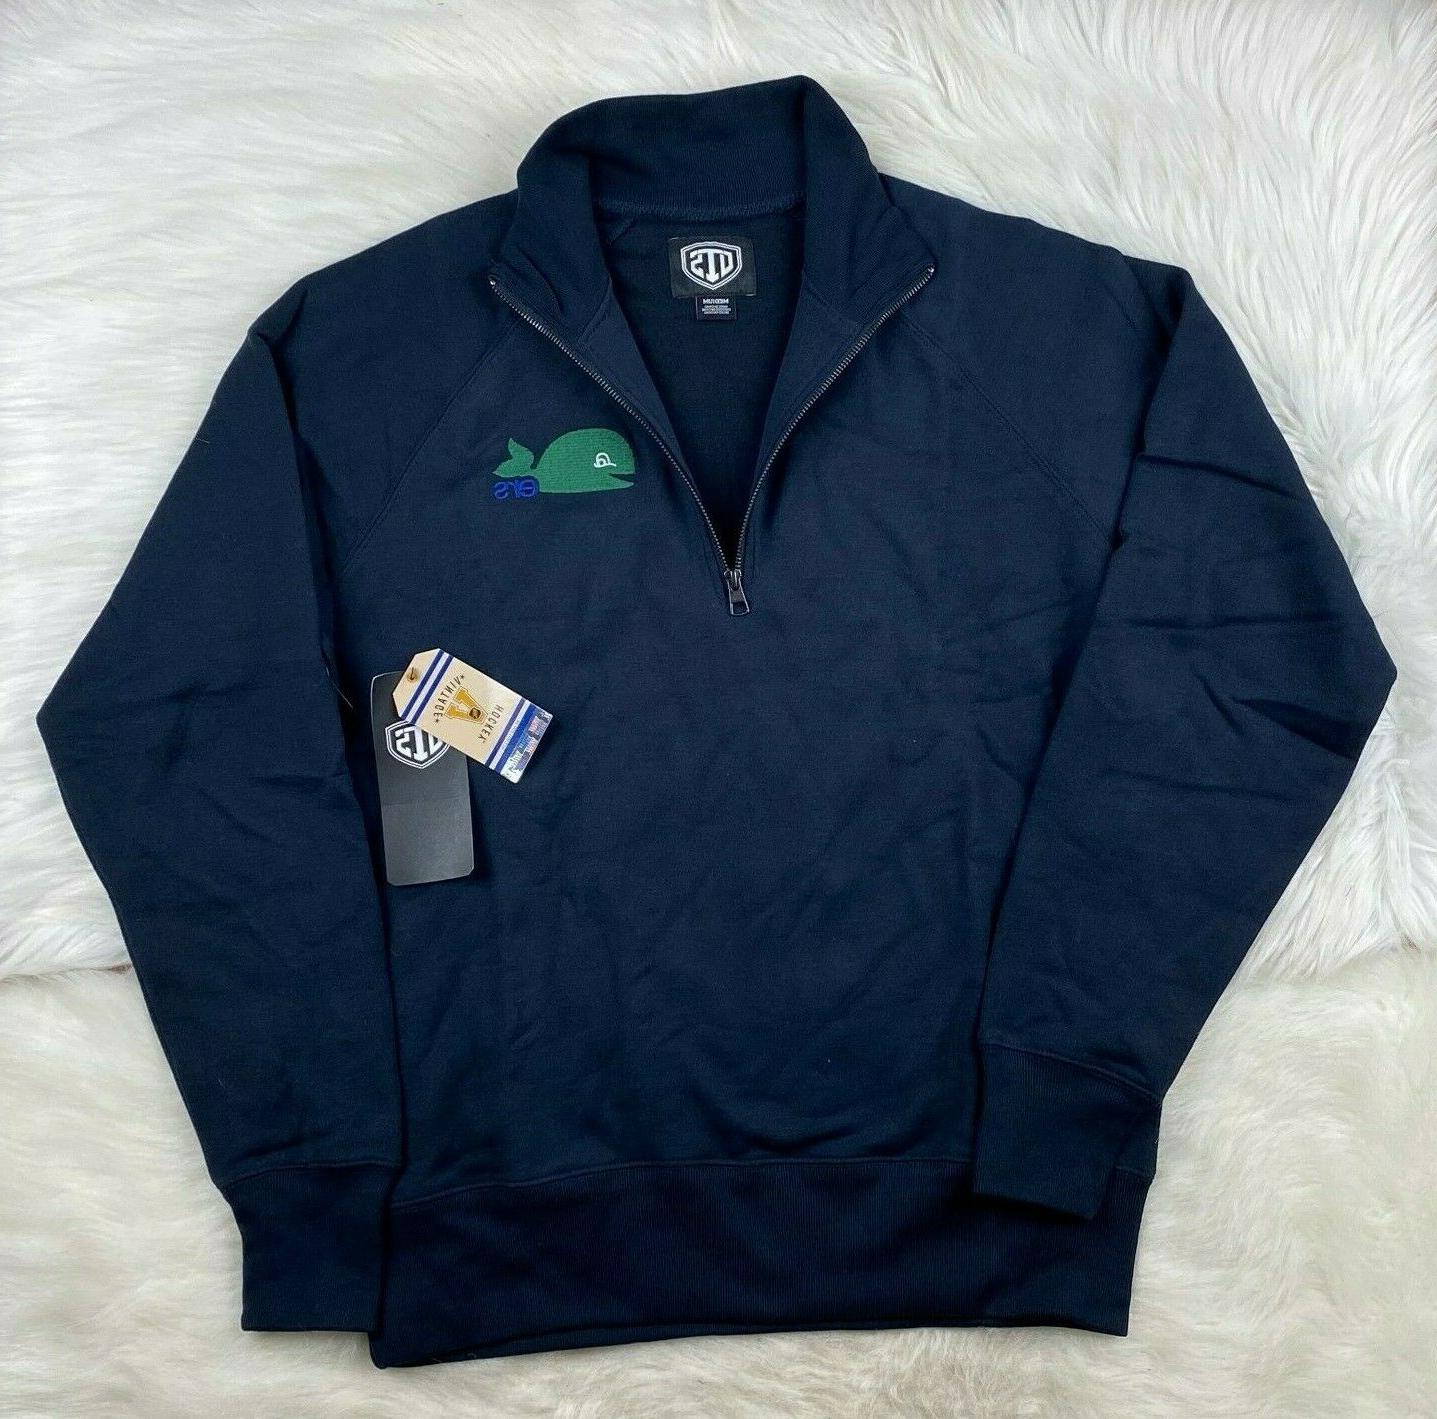 hartford whalers 1 4 zip pullover track